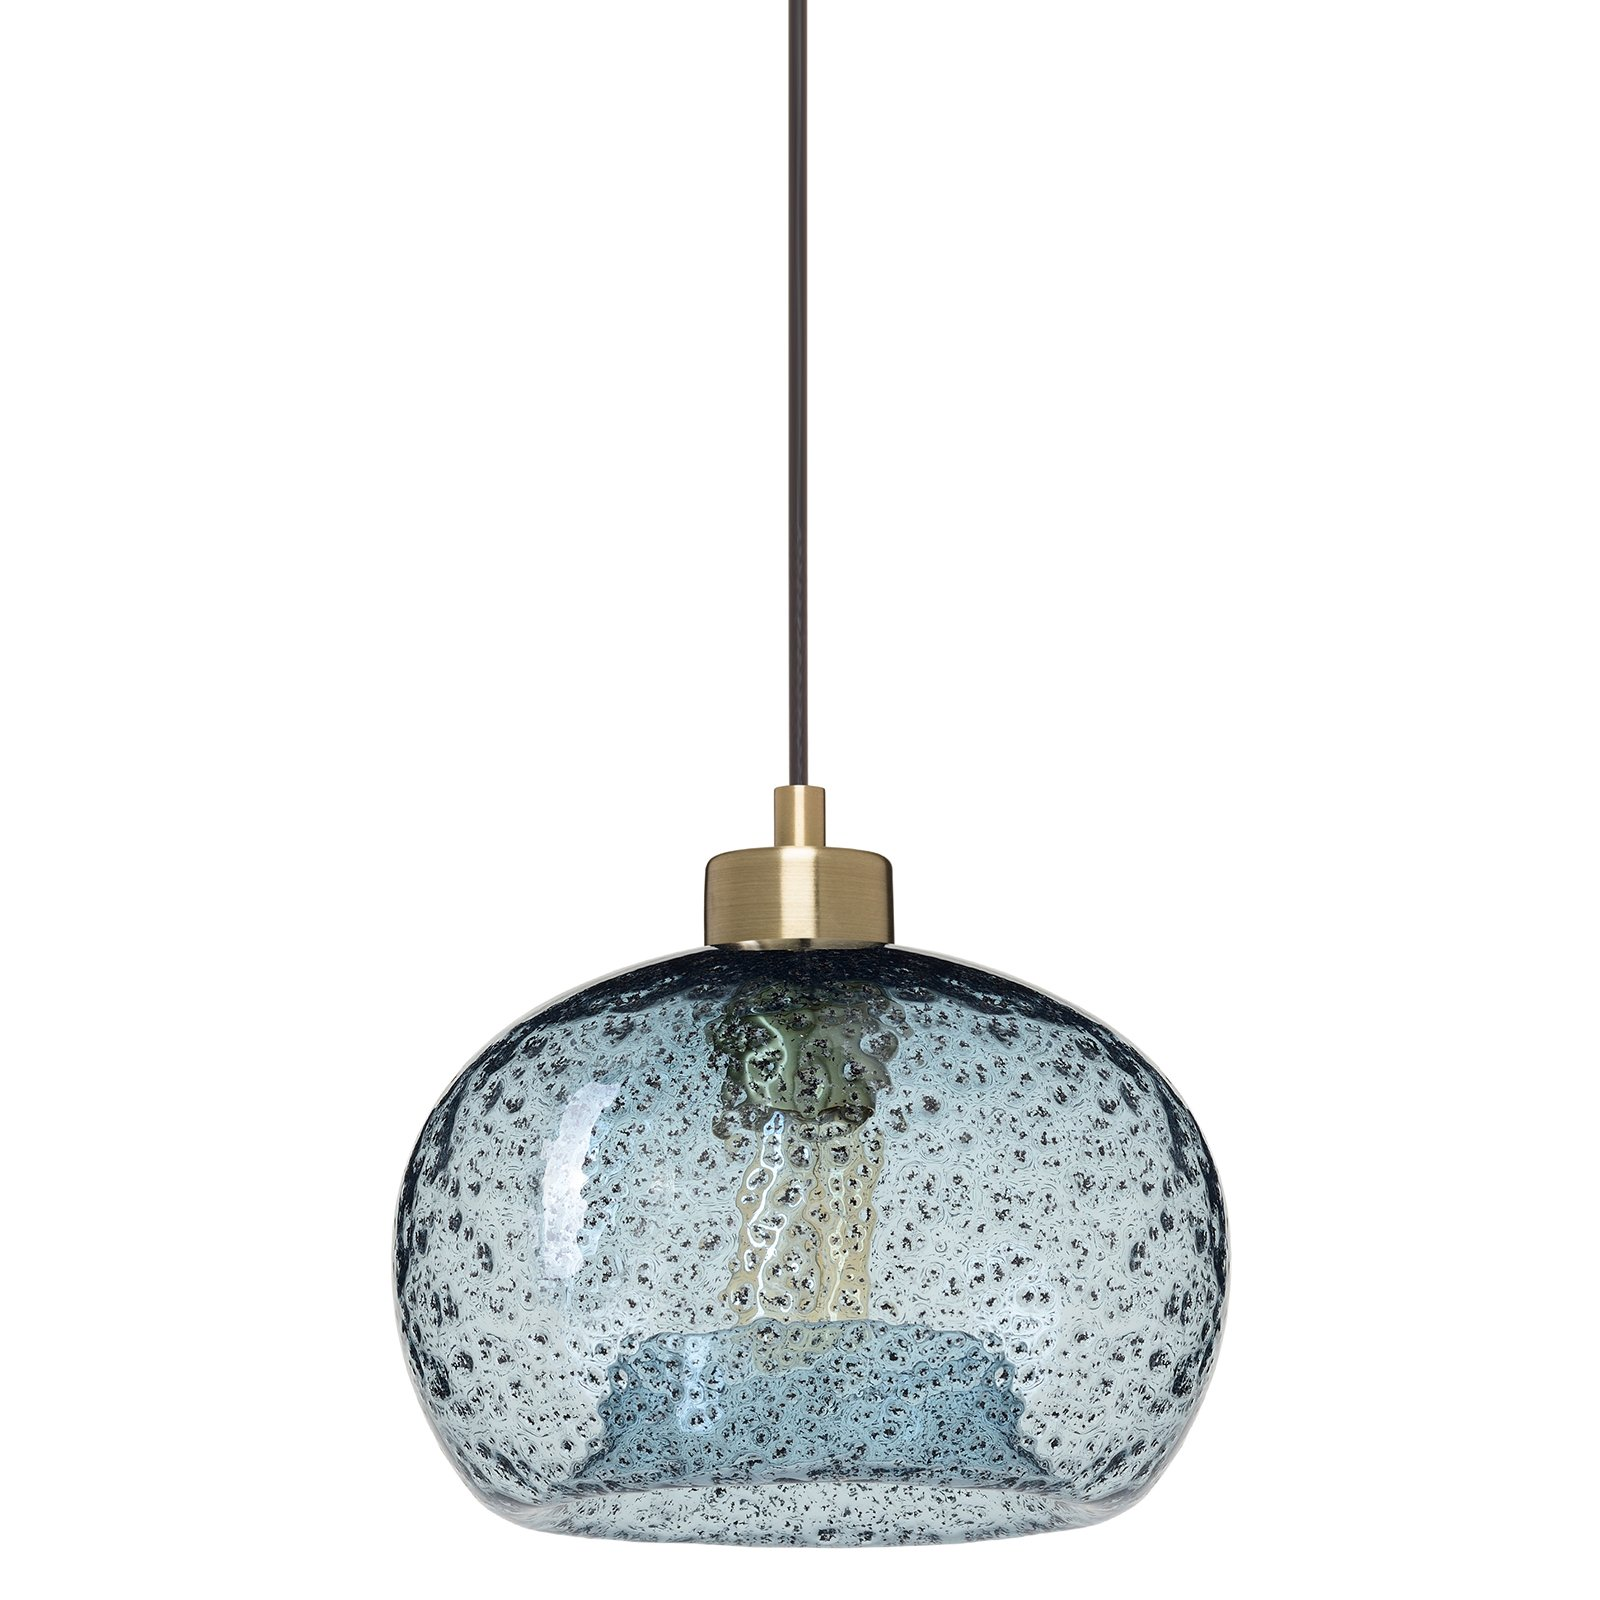 Casamotion Pendant Lighting Handblown Glass Drop ceiling lights, Rustic Hanging Light Blue Seeded Glass with black sand powder, Brushed Brass Finish